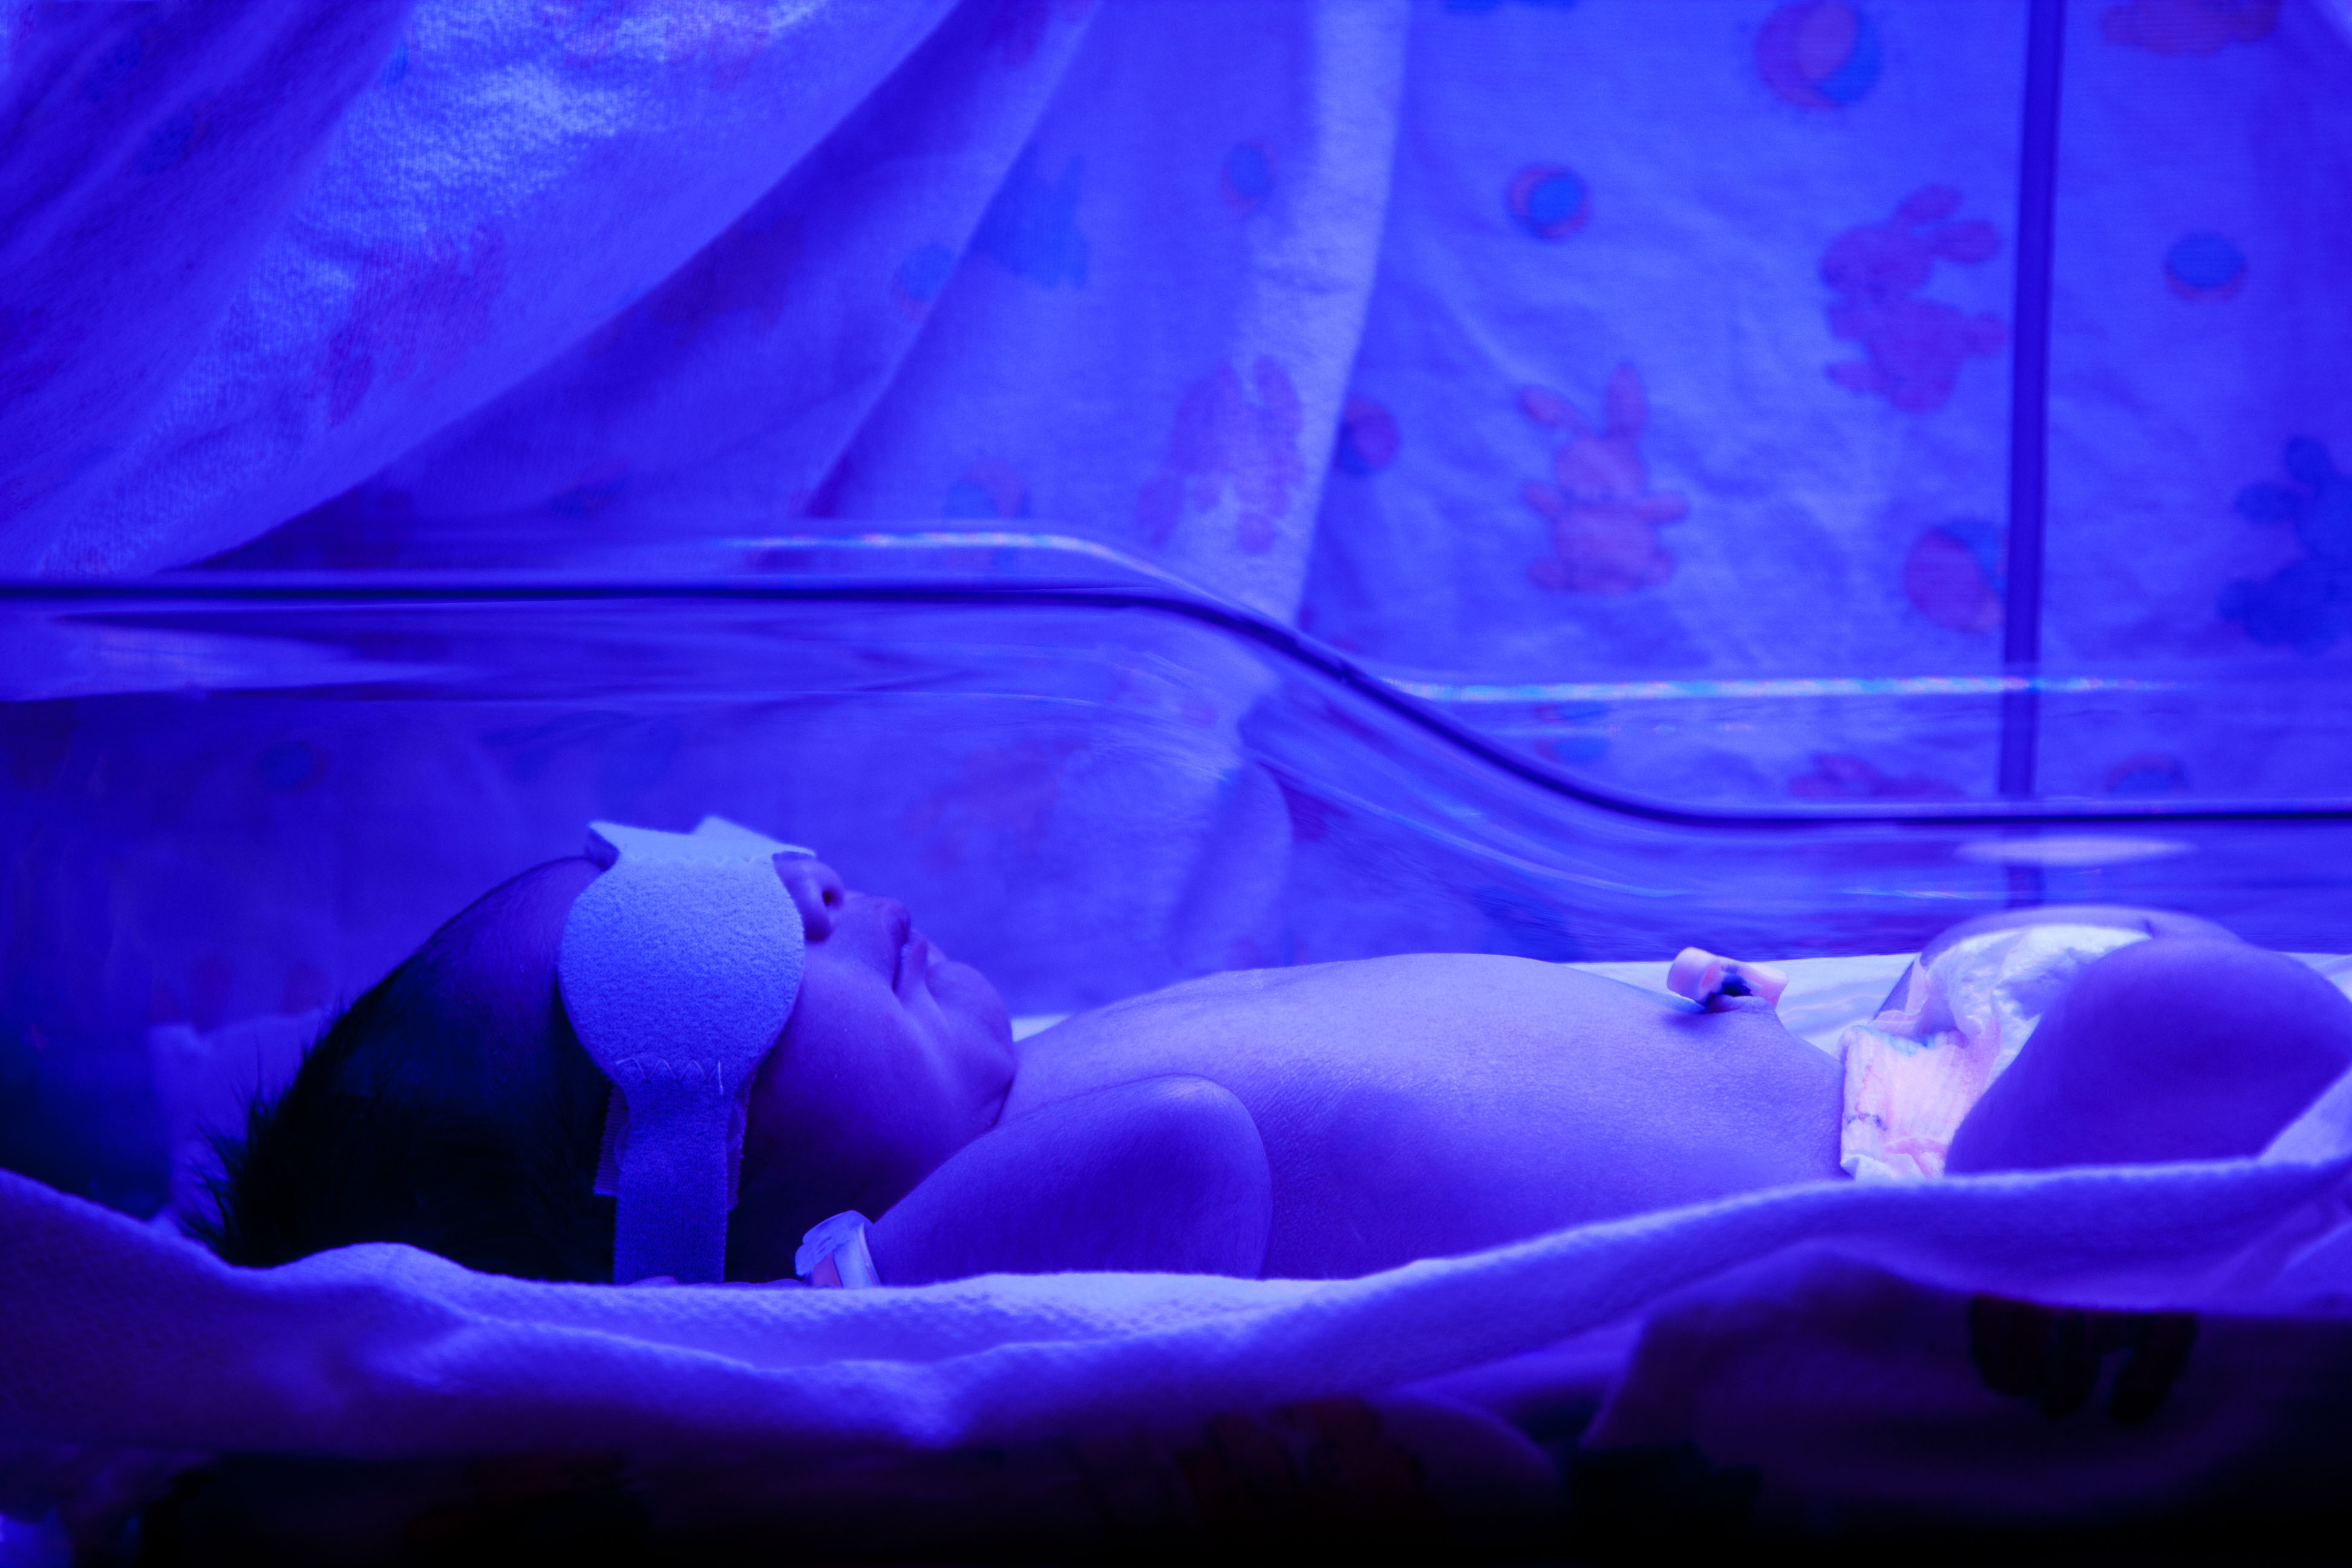 Newborn Babies Jaundice Treatment Newborns Can Suffer Learning Difficulties Adhd And Even Die